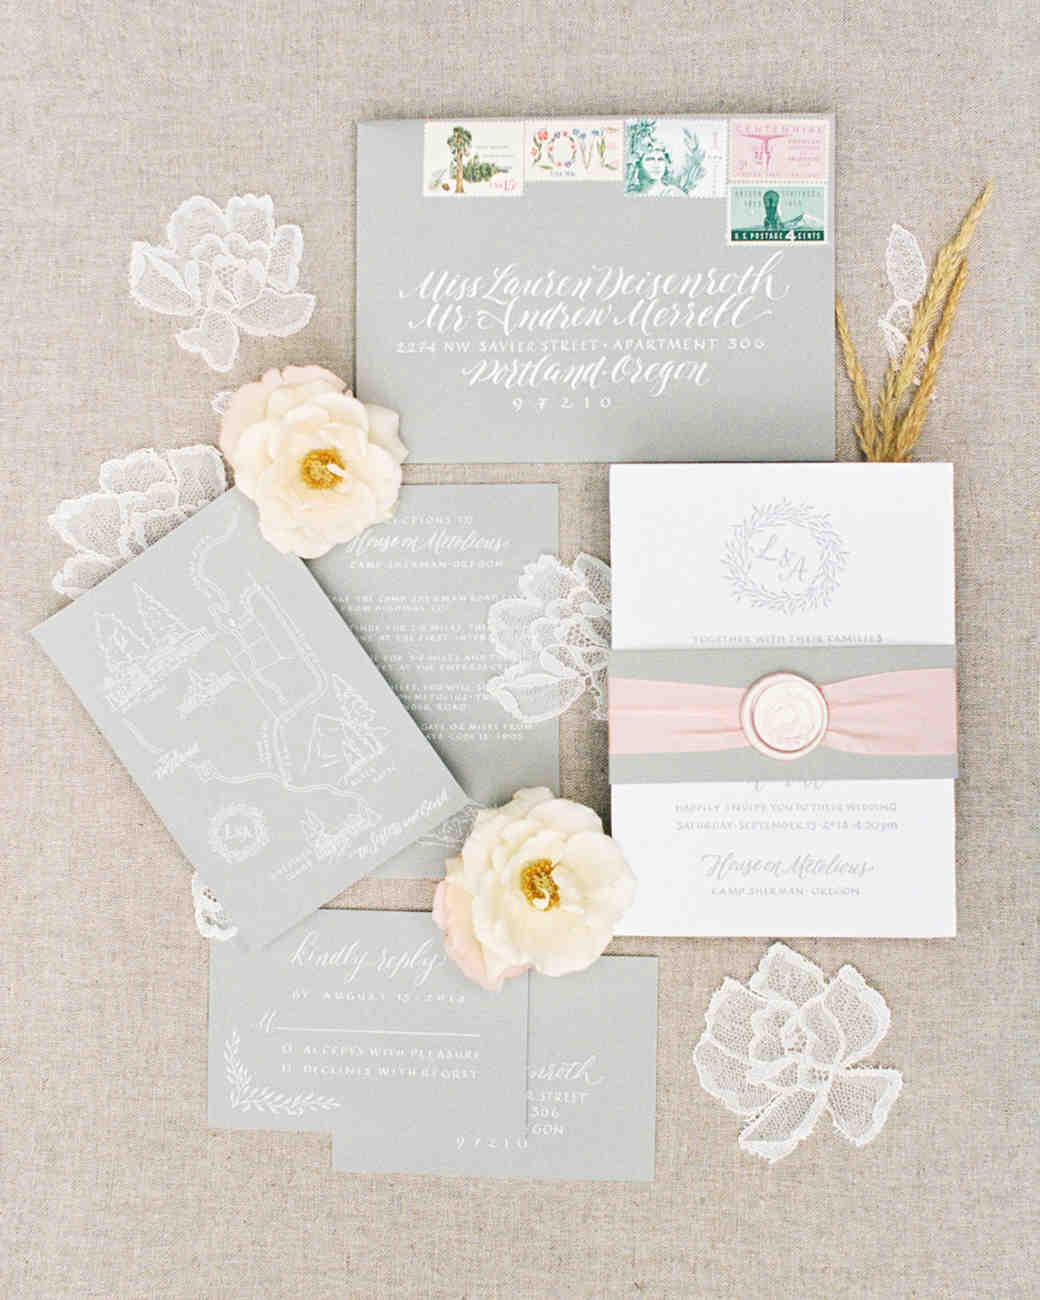 ribbon wedding ideas wax seal and pink ribbon wrapped around invitation